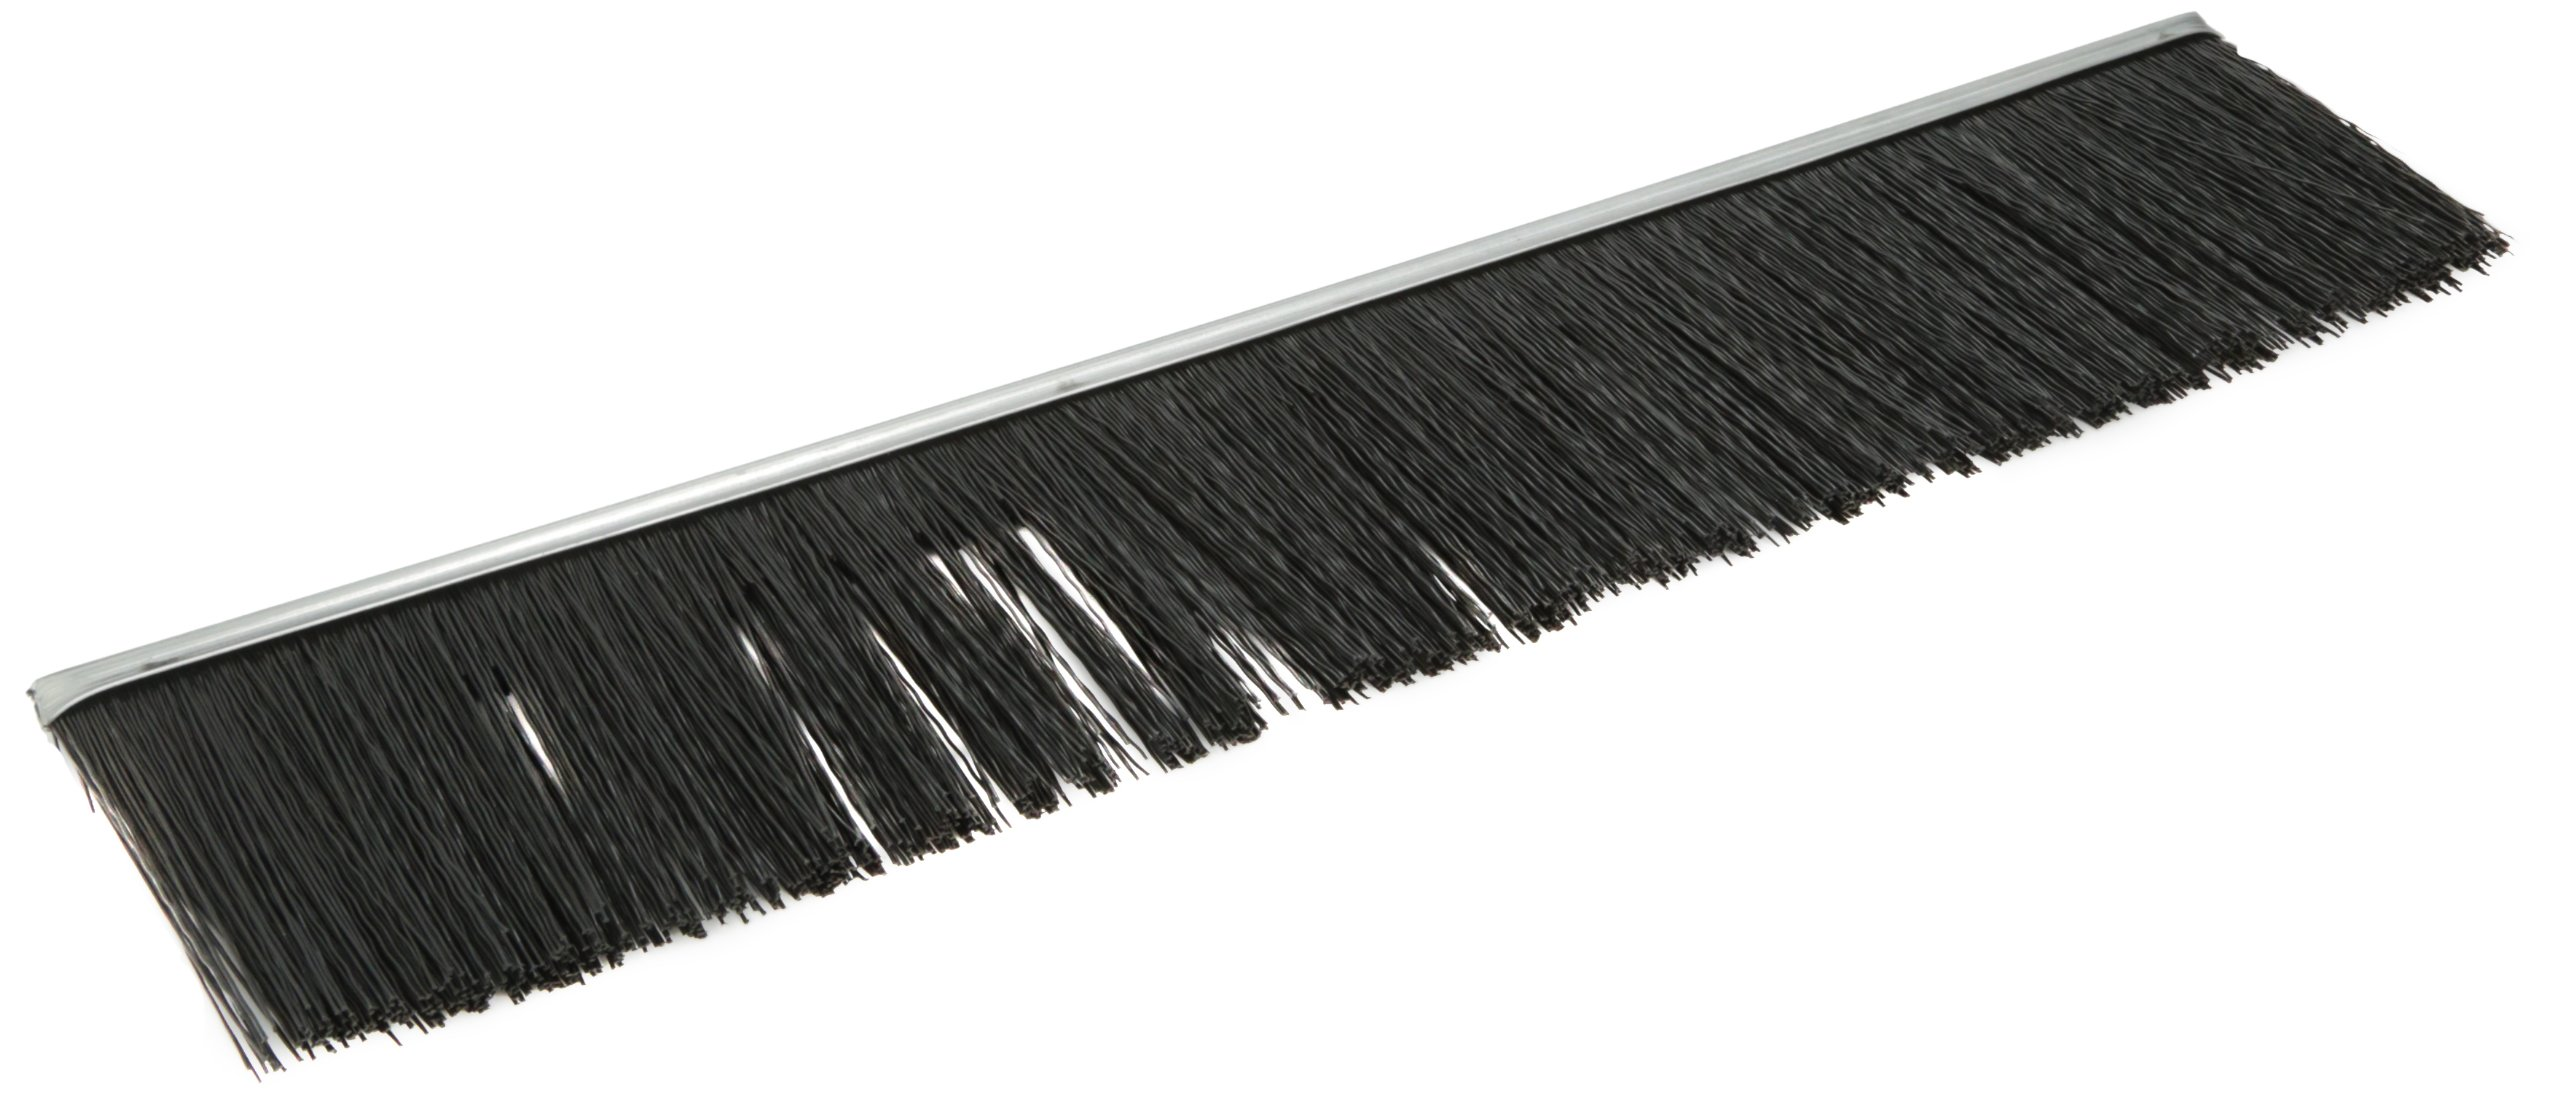 Agri-Fab 46780 Brush, 42-Inch Sweeper- 21-3/4-Inch by Agri-Fab (Image #1)